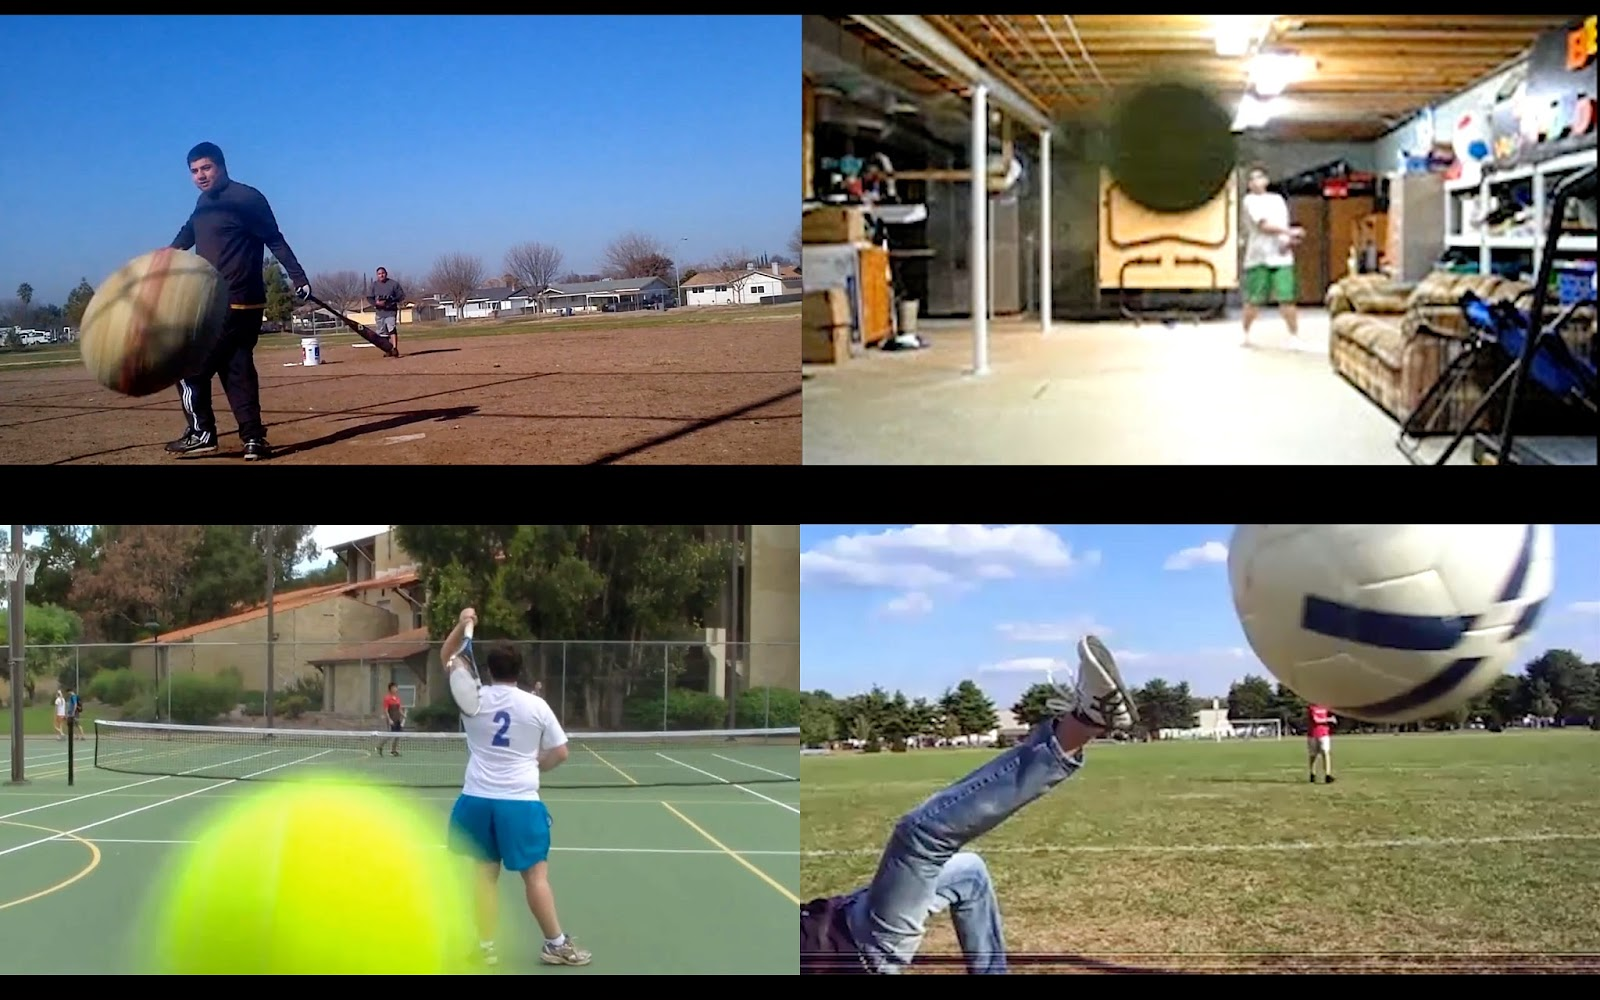 4 images of people playing sport, in each image a ball is about to hit the camera